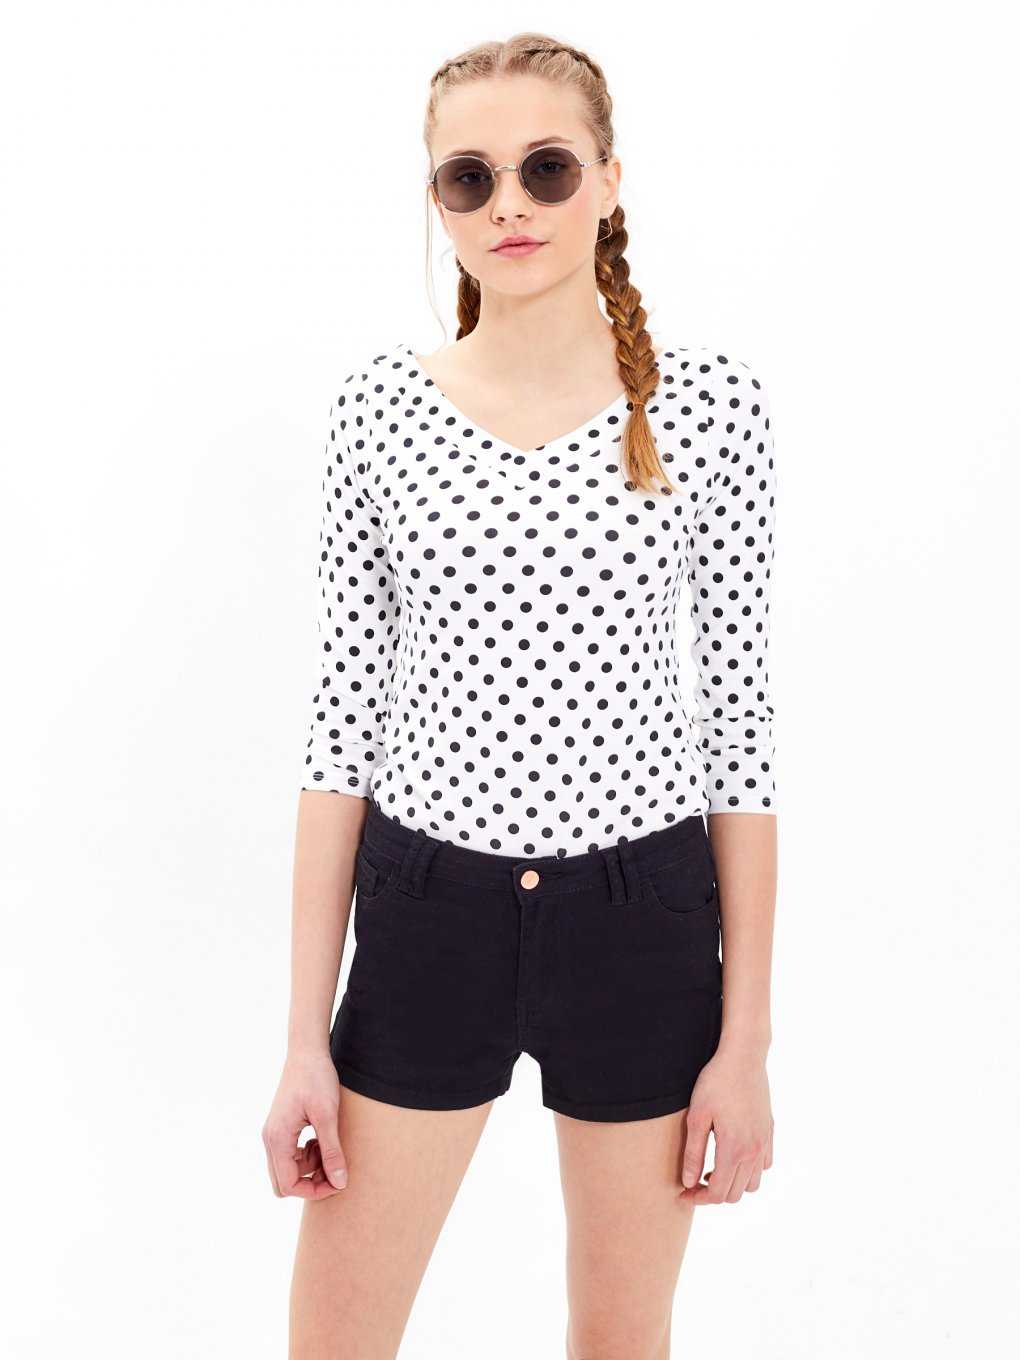 Polka dot print top